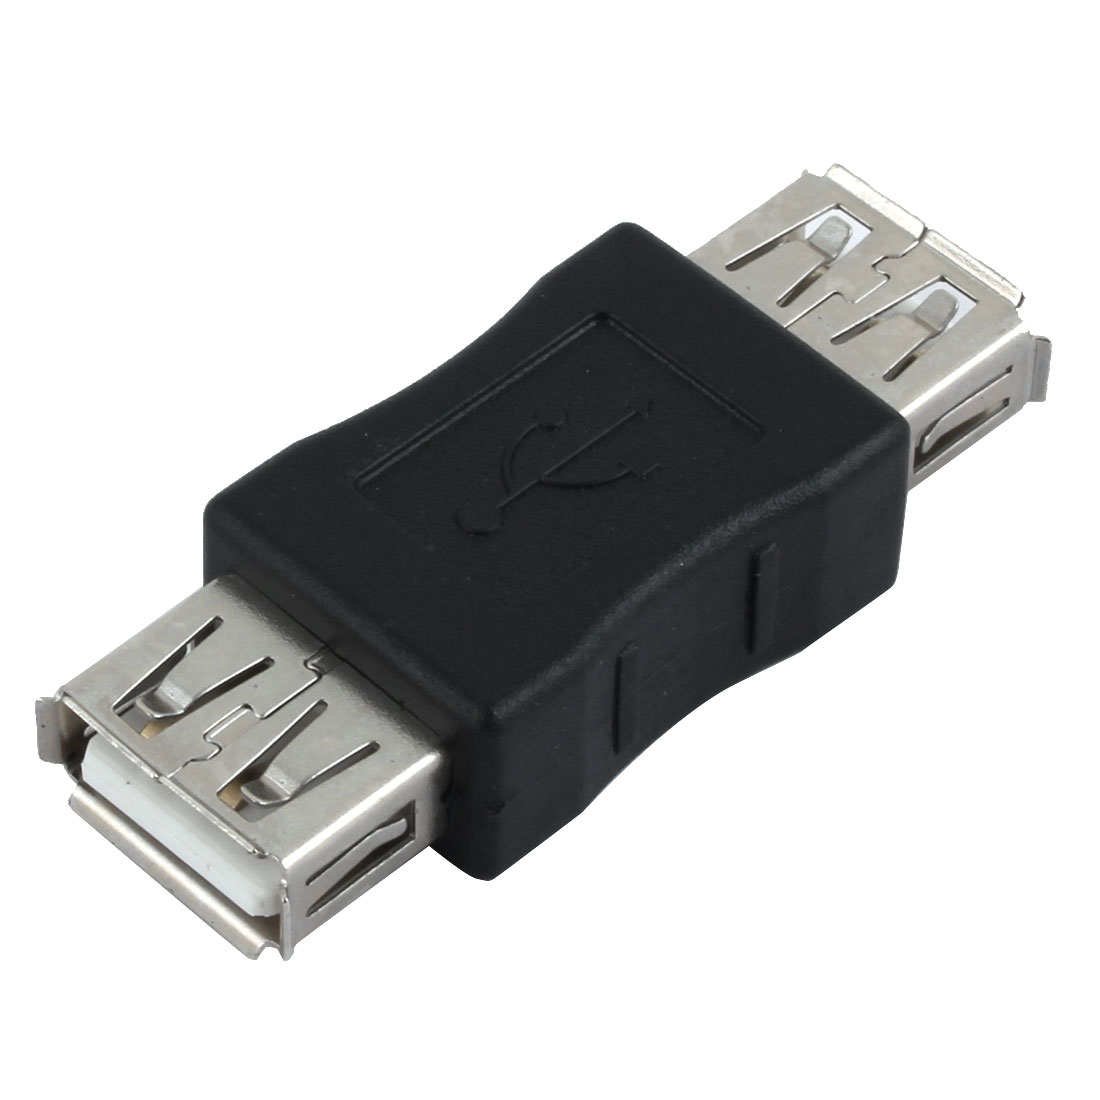 USB 2.0 Type A Female to Female Converter Coupler Adapter Connector